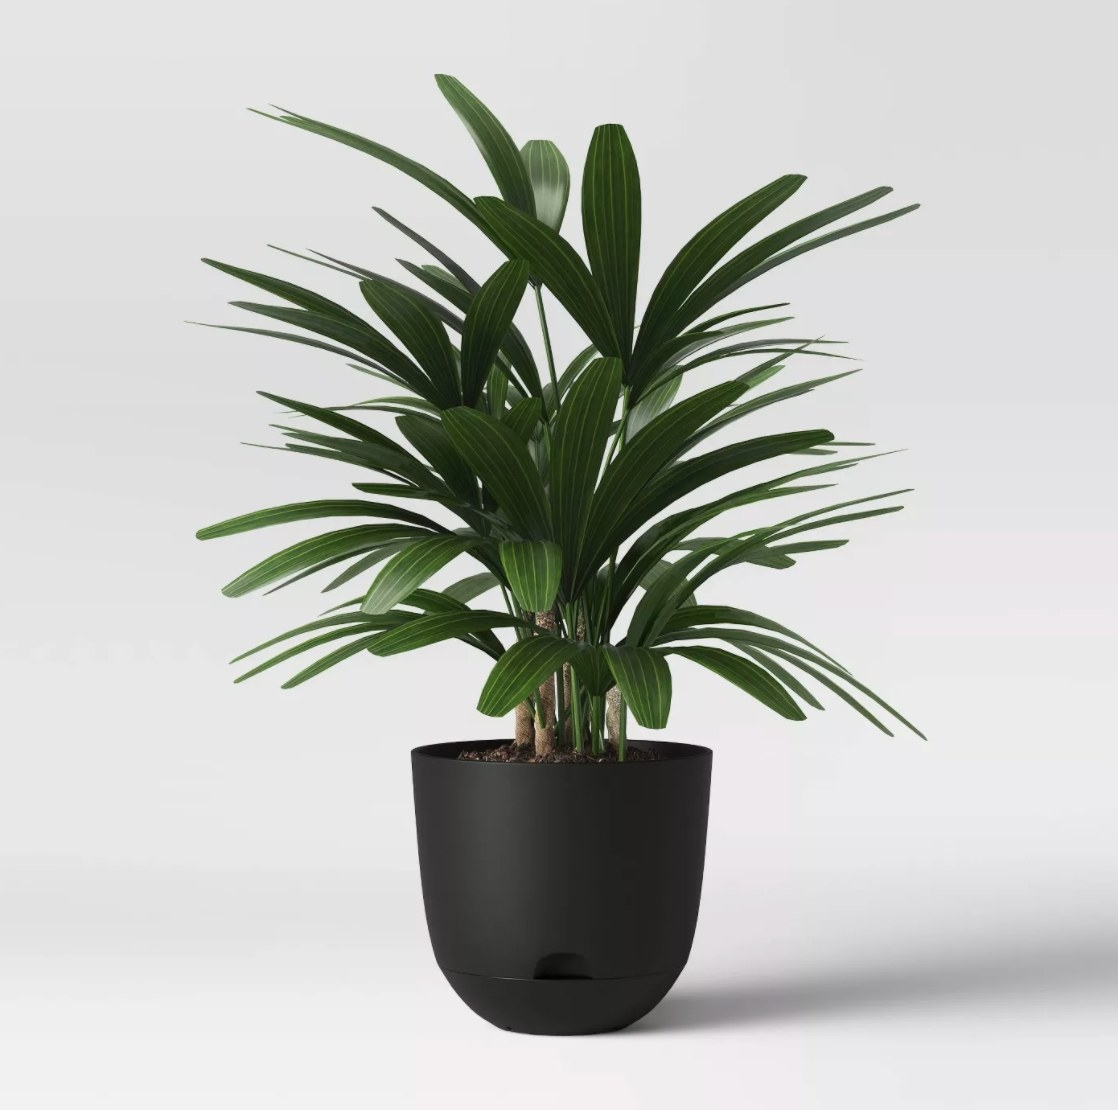 The leafy potted plant